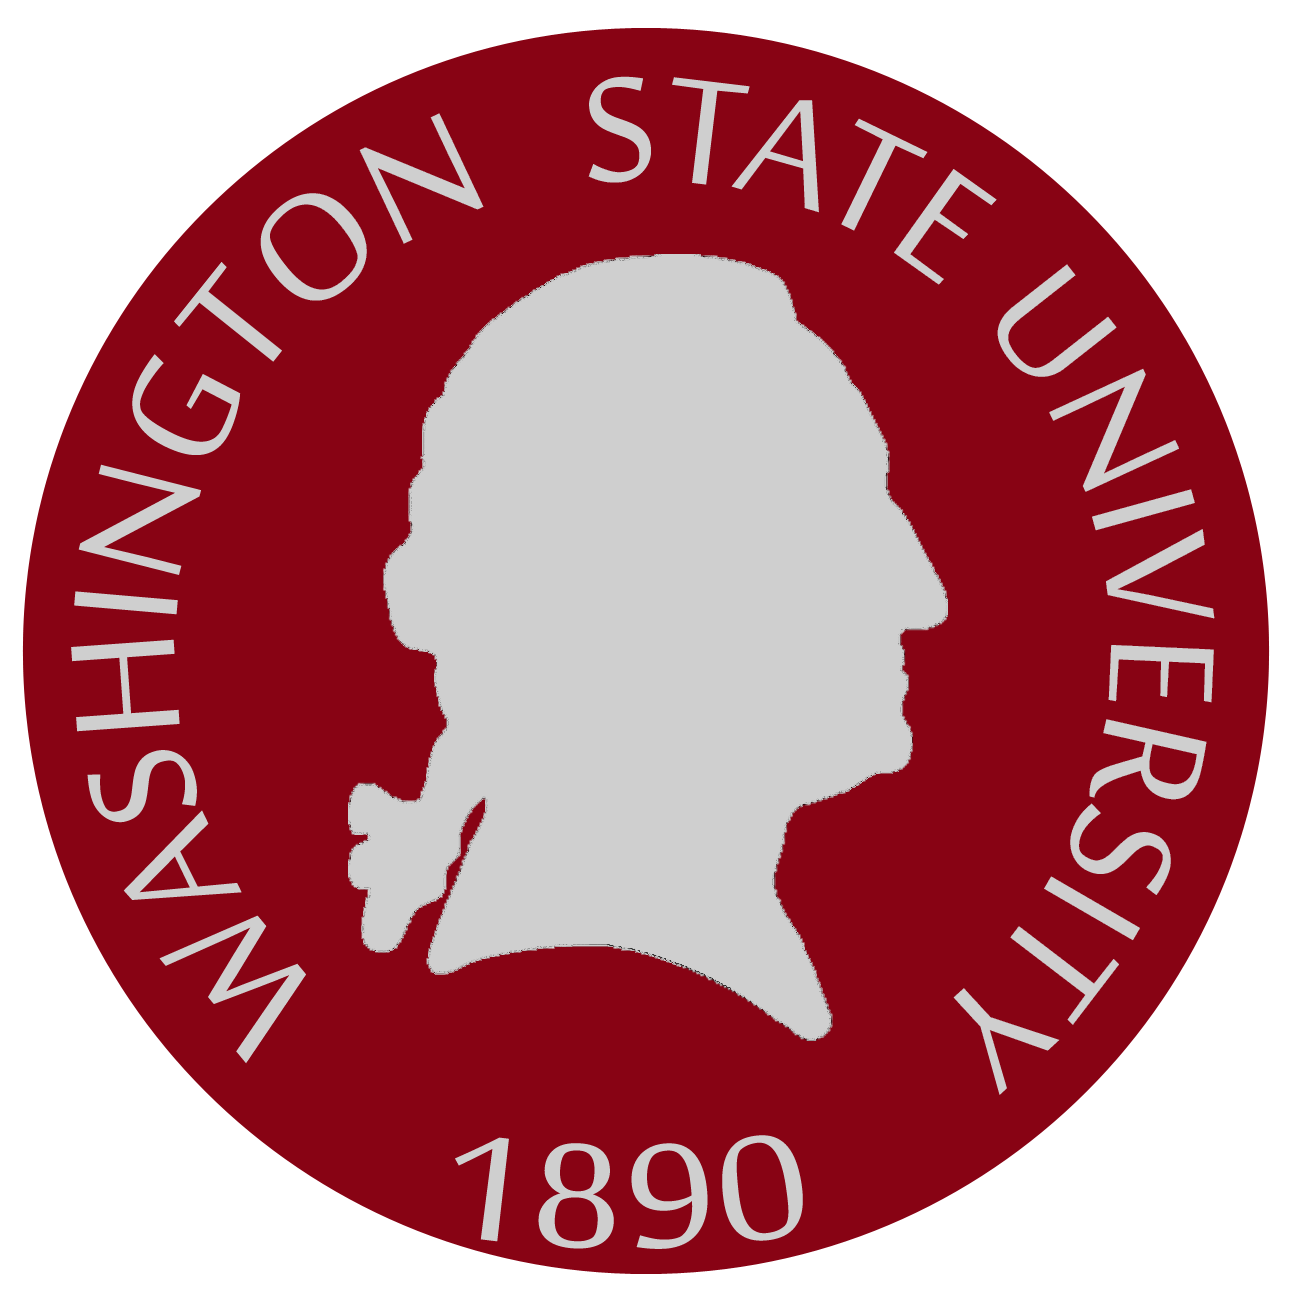 Image result for washington state university